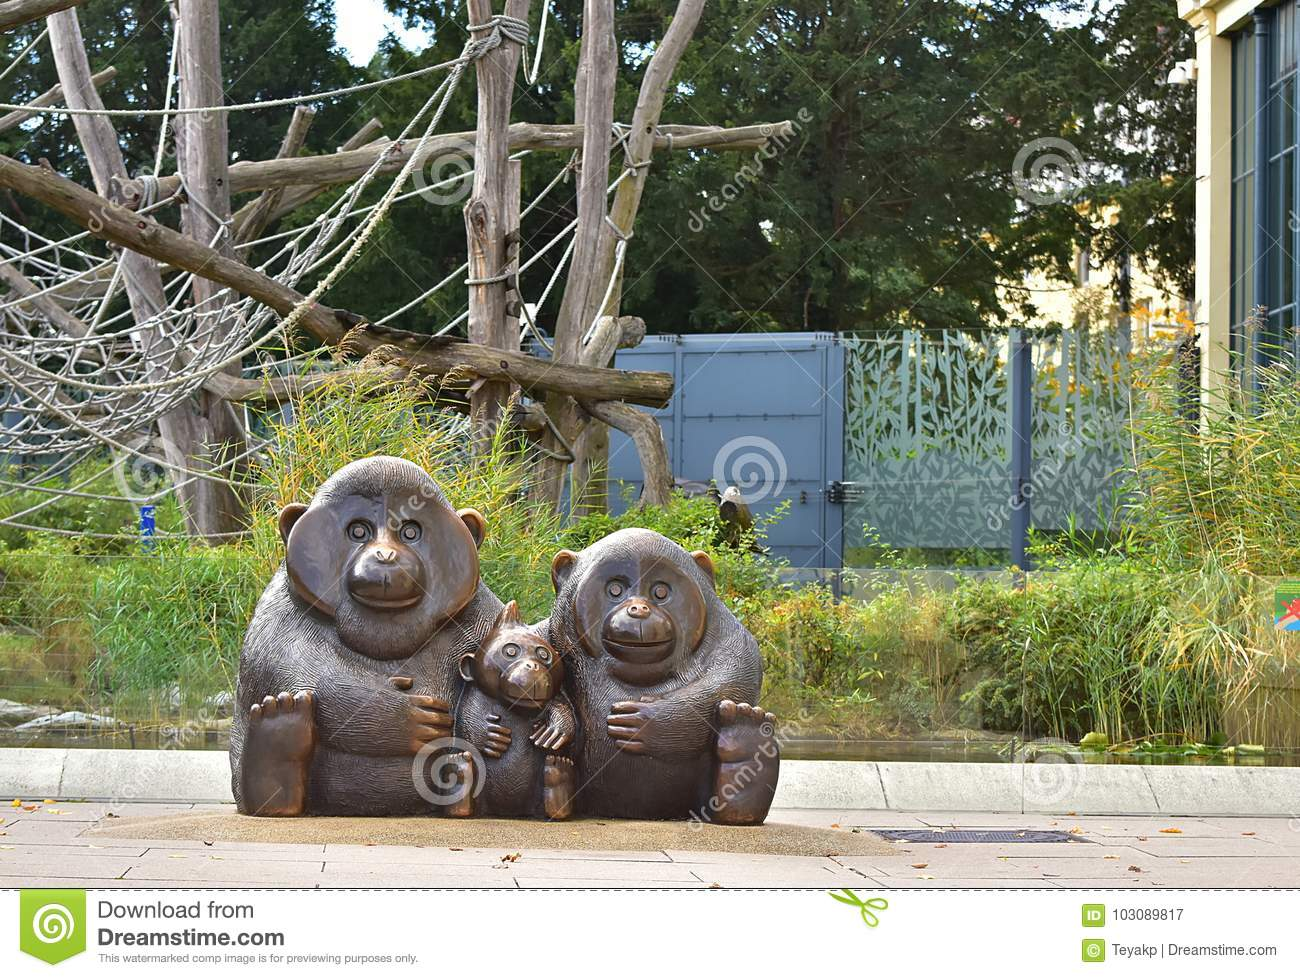 Statue of the monkey family